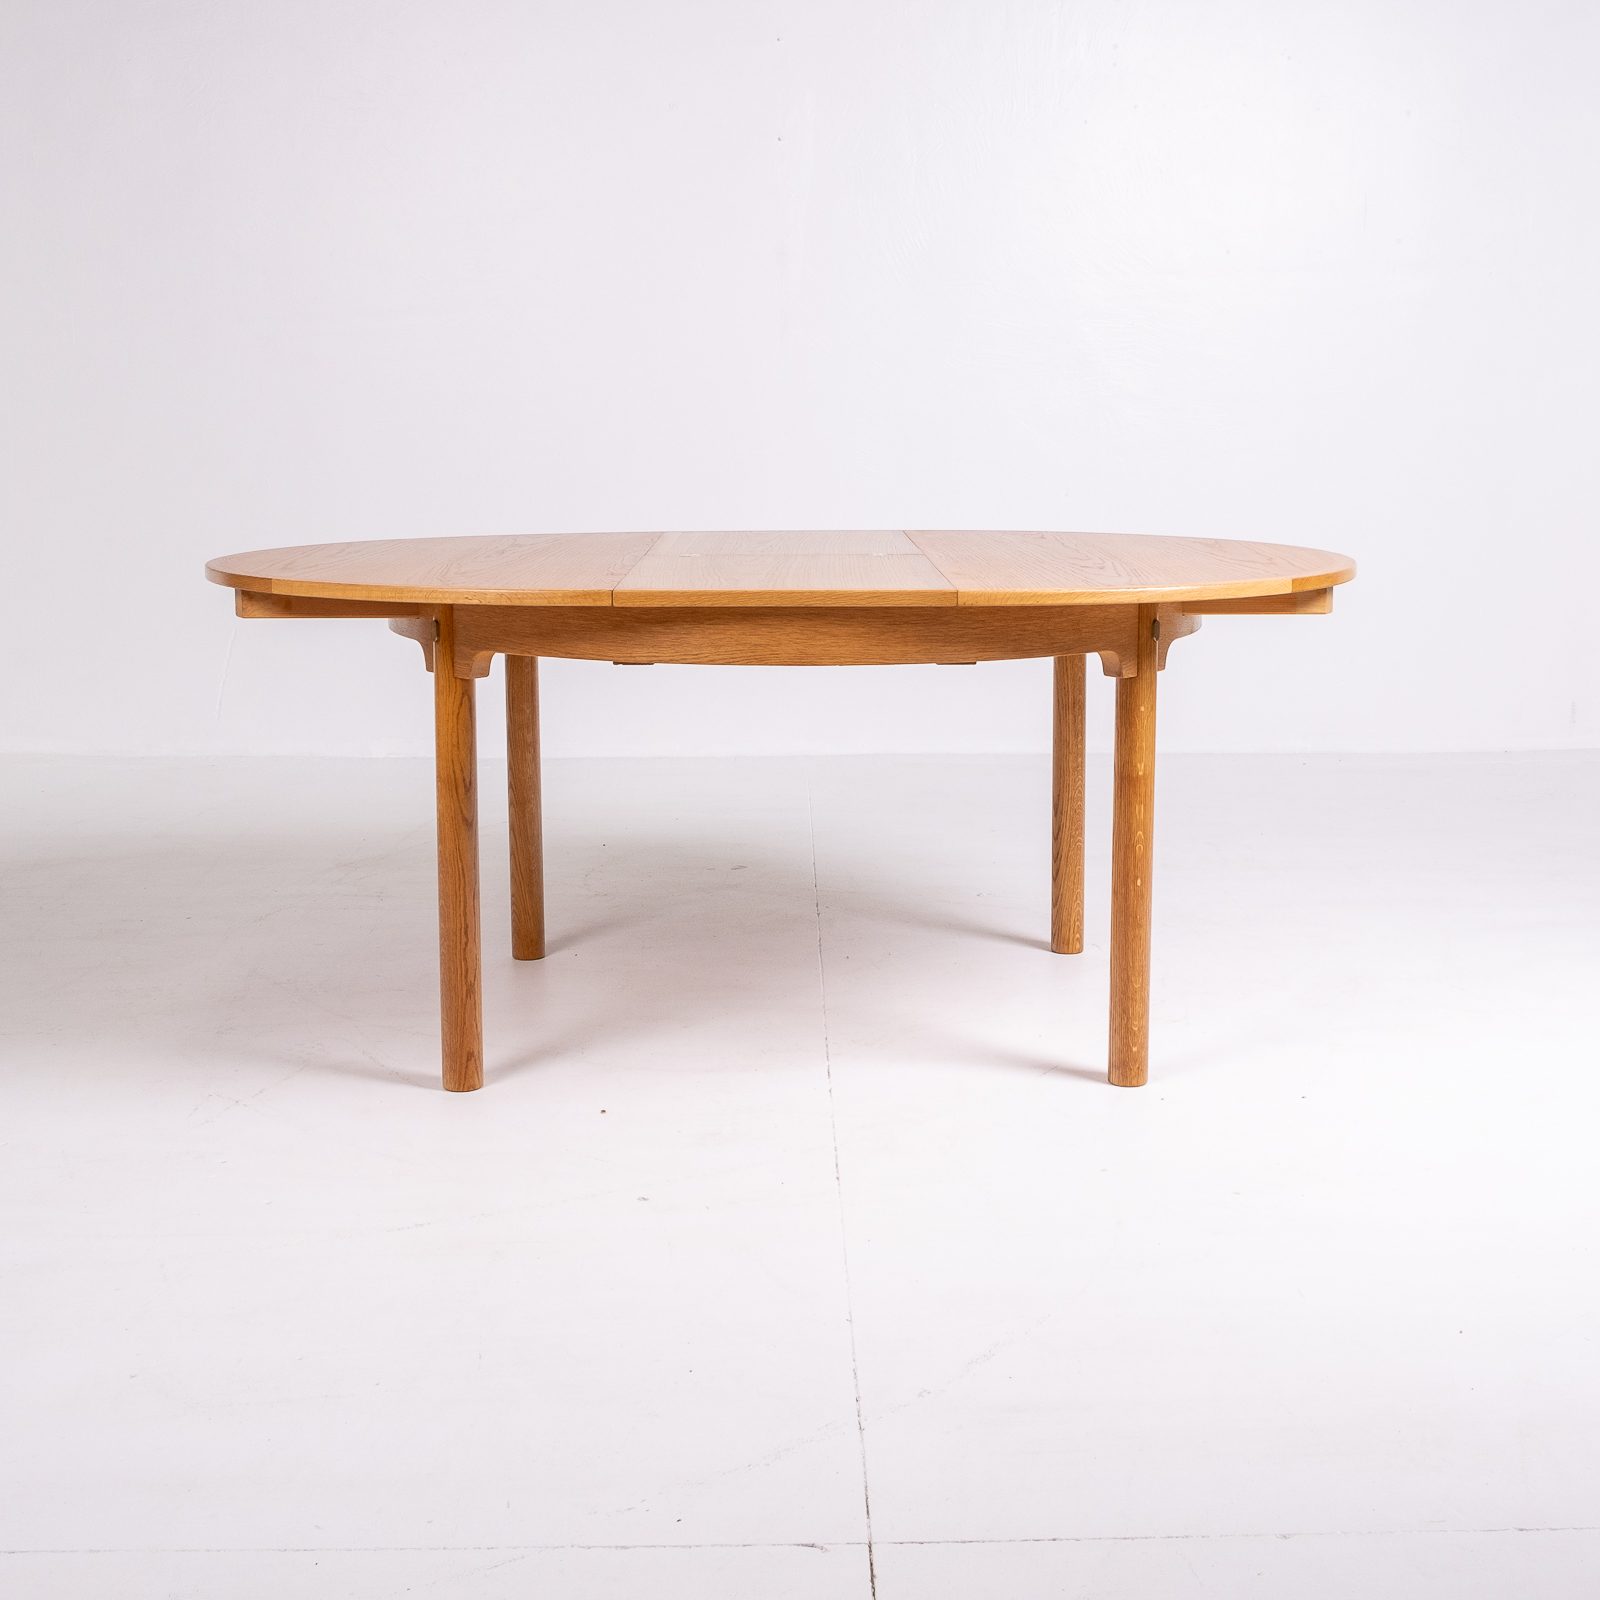 Round 140 Dining Table By Borge Mogensen For Karl Andersson & Söner In Oak With Butterfly Extensions, 1960s, Denmark75